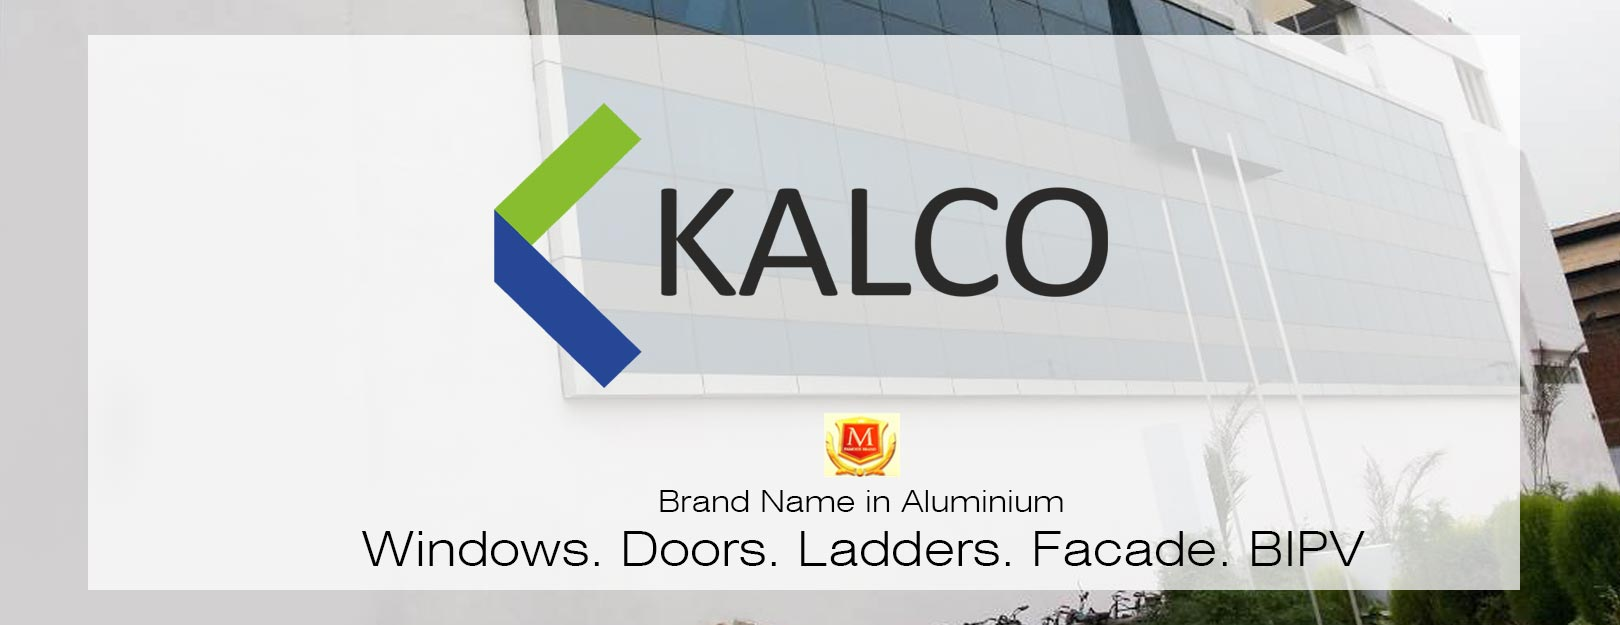 kalco-leader-in-aluminium-windows-doors-facade-ladders